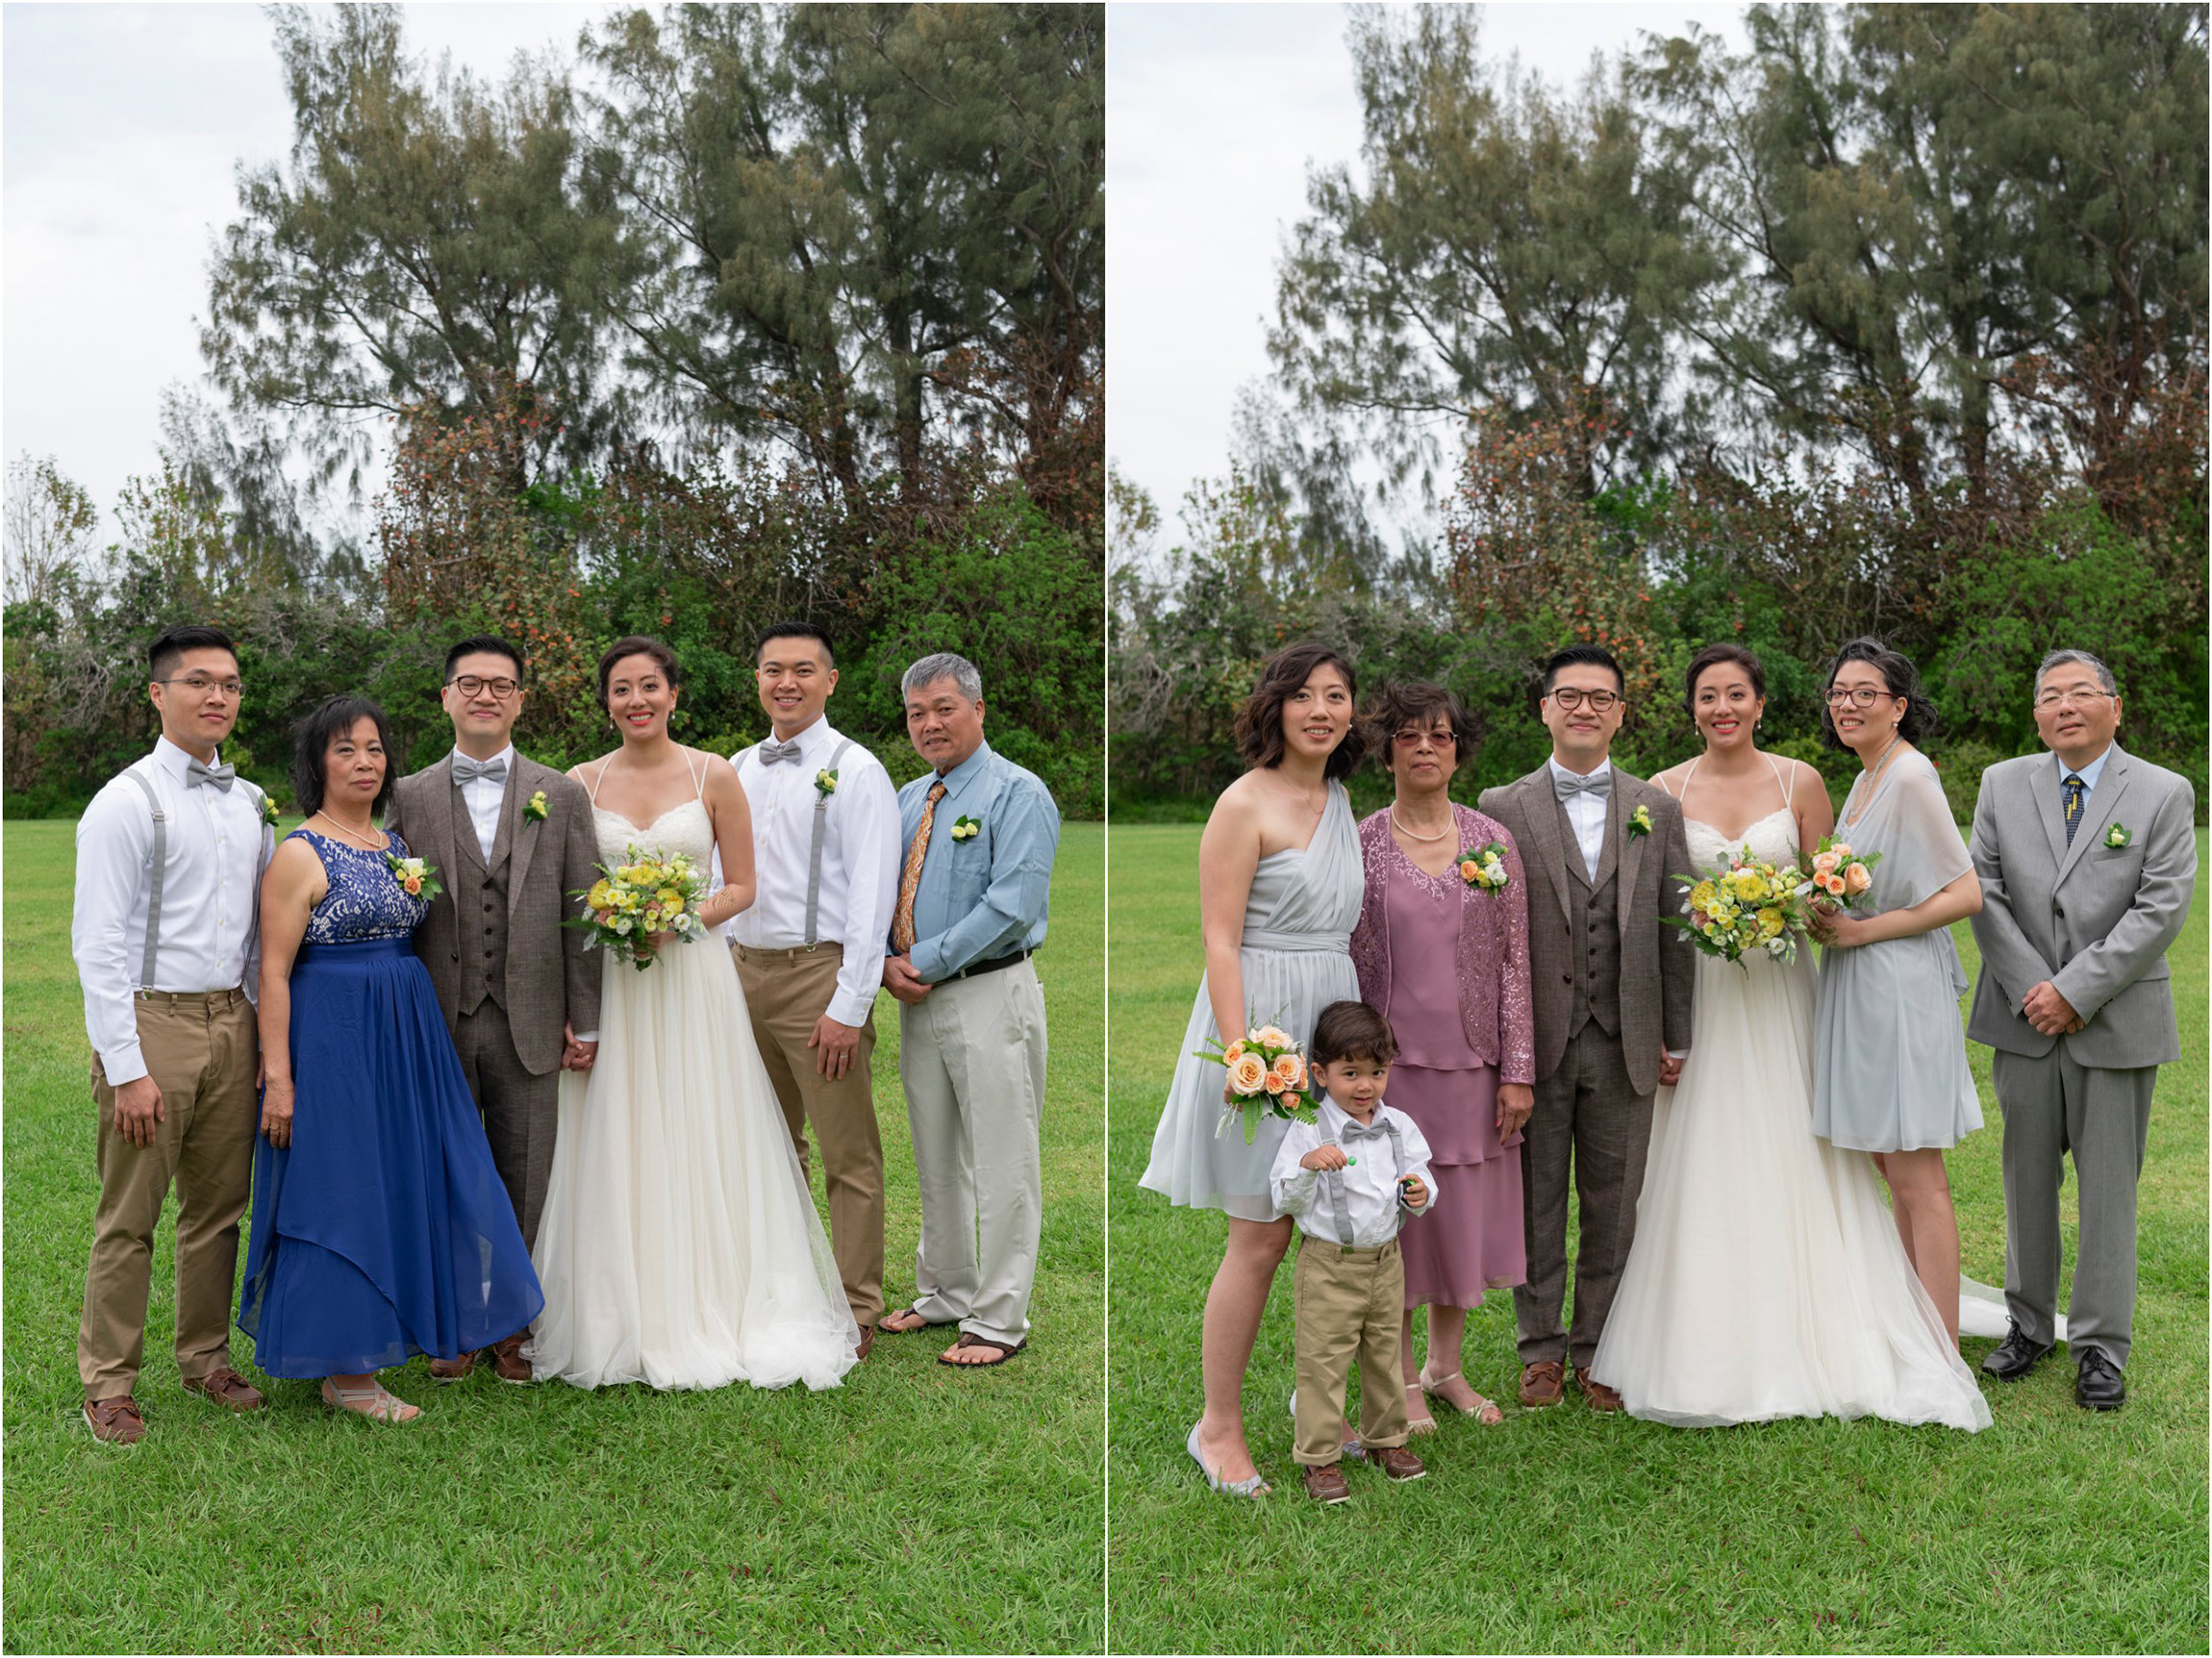 ©FianderFoto_Bermuda Wedding Photographer_Fairmont Southampton_Amy_Wilson_049.jpg